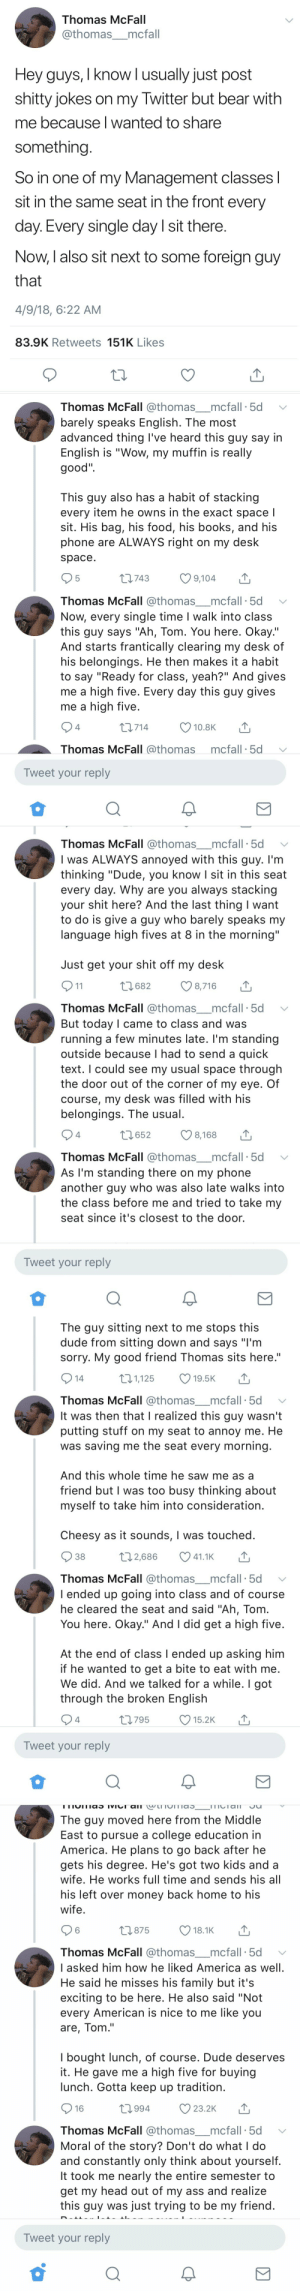 "positive-memes:Student finds annoying foreigner is a friend he didn't know he had.: Thomas McFall  @thomas_mcfall  Hey guys, I know l usually just post  shitty jokes on my Twitter but bear with  me because l wanted to share  something  So in one of my Management classes l  sit in the same seat in the front every  day. Every single day I sit there  Now, l also sit next to some foreign guy  that  4/9/18, 6:22 AM  83.9K Retweets 151K Likes   Thomas McFall @thomas mcfall. 5d 、  barely speaks English. The most  advanced thing l've heard this guy say in  English is ""Wow, my muffin is really  good""  This guy also has a habit of stackin;g  every item he owns in the exact space l  sit. His bag, his food, his books, and his  phone are ALWAYS right on my desk  space  5  t 743  9,104  Thomas McFall @thomas mcfall 5d  Now, every single time l walk into class  this guy says ""Ah, Tom. You here. Okay.""  And starts frantically clearing my desk of  his belongings. He then makes it a habit  to say ""Ready for class, yeah?"" And gives  me a high five. Every day this quy gives  me a high five  714  10.8K  Thomas McFall @thomasmcfall 5d  Tweet your reply   Thomas McFall @thomas mcfall 5d  I was ALWAYS annoyed with this guy. l'm  thinking ""Dude, you know I sit in this seat  every day. Why are you always stacking  your shit here? And the last thing I want  to do is give a guy who barely speaks my  language high fives at 8 in the morning""  Just get your shit off my desk  682 8,716  Thomas McFall @thomas mcfall 5d  But today I came to class and was  running a few minutes late. I'm standing  outside because l had to send a quick  text. I could see my usual space through  the door out of the corner of my eye. Of  course, my desk was filled with his  belongings. The usual  4  1652 8,168  Thomas McFall @thomas mcfall 5d  As I'm standing there on my phone  another guy who was also late walks into  the class before me and tried to take my  seat since it's closest to the door.  Tweet your reply  0   The guy sitting next to me stops this  dude from sitting down and says ""I'm  sorry. My good friend Thomas sits here.""  t 1,125  19.5K  Thomas McFall @thomas mcfall. 5d  It was then that I realized this guy wasn't  putting stuff on my seat to annoy me. He  was saving me the seat every morning  And this whole time he saw me as a  friend but I was too busy thinking about  myself to take him into consideration  Cheesy as it sounds, I was touched  38  Thomas McFall @thomas mcfall. 5d ﹀  l ended up going into class and of course  he cleared the seat and said ""Ah, Tom  You here. Okay."" And I did get a high five  02,686 41.1KT  At the end of class l ended up asking him  if he wanted to get a bite to eat with me  We did. And we talked for a while. I got  through the broken English  4  0795 15.2K  Tweet your reply   The guy moved here from the Middle  East to pursue a college education in  America. He plans to go back after he  gets his degree. He's got two kids and a  wife. He works full time and sends his all  his left over money back home to his  wife  6  875  18.1K  Thomas McFall @thomas mcfall 5d  